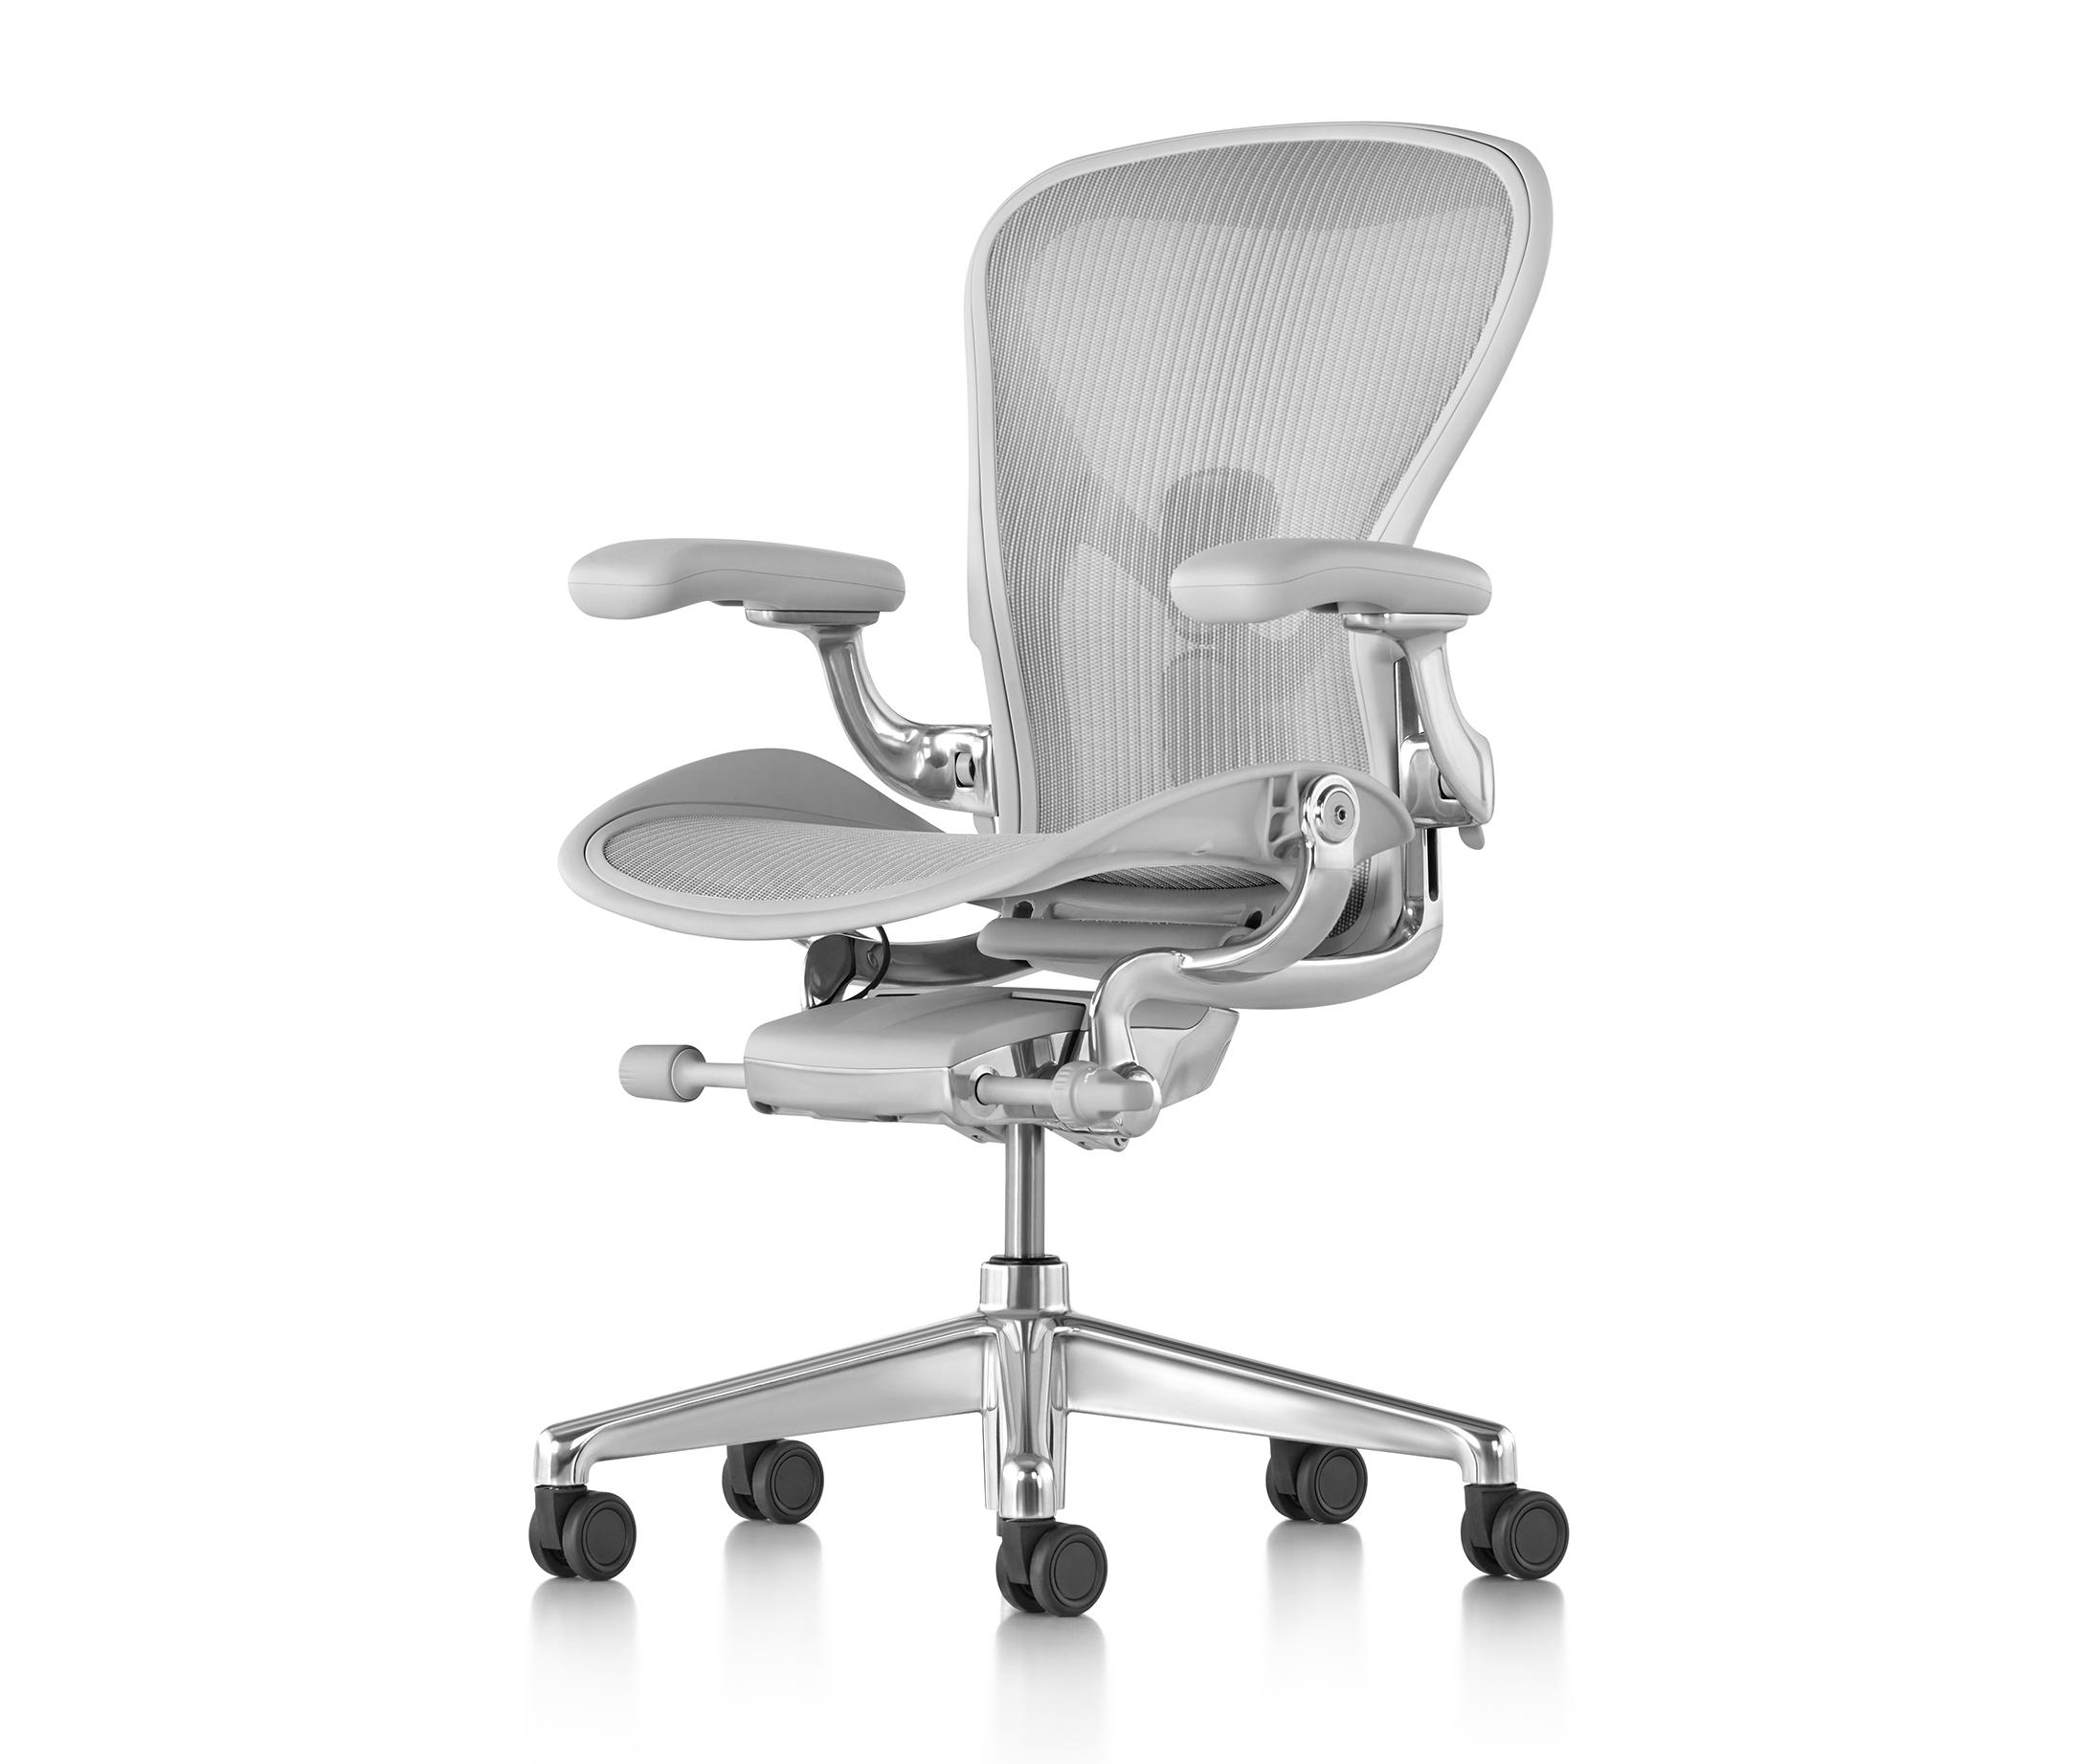 Aero Chair Aeron Chair Office Chairs From Herman Miller Architonic